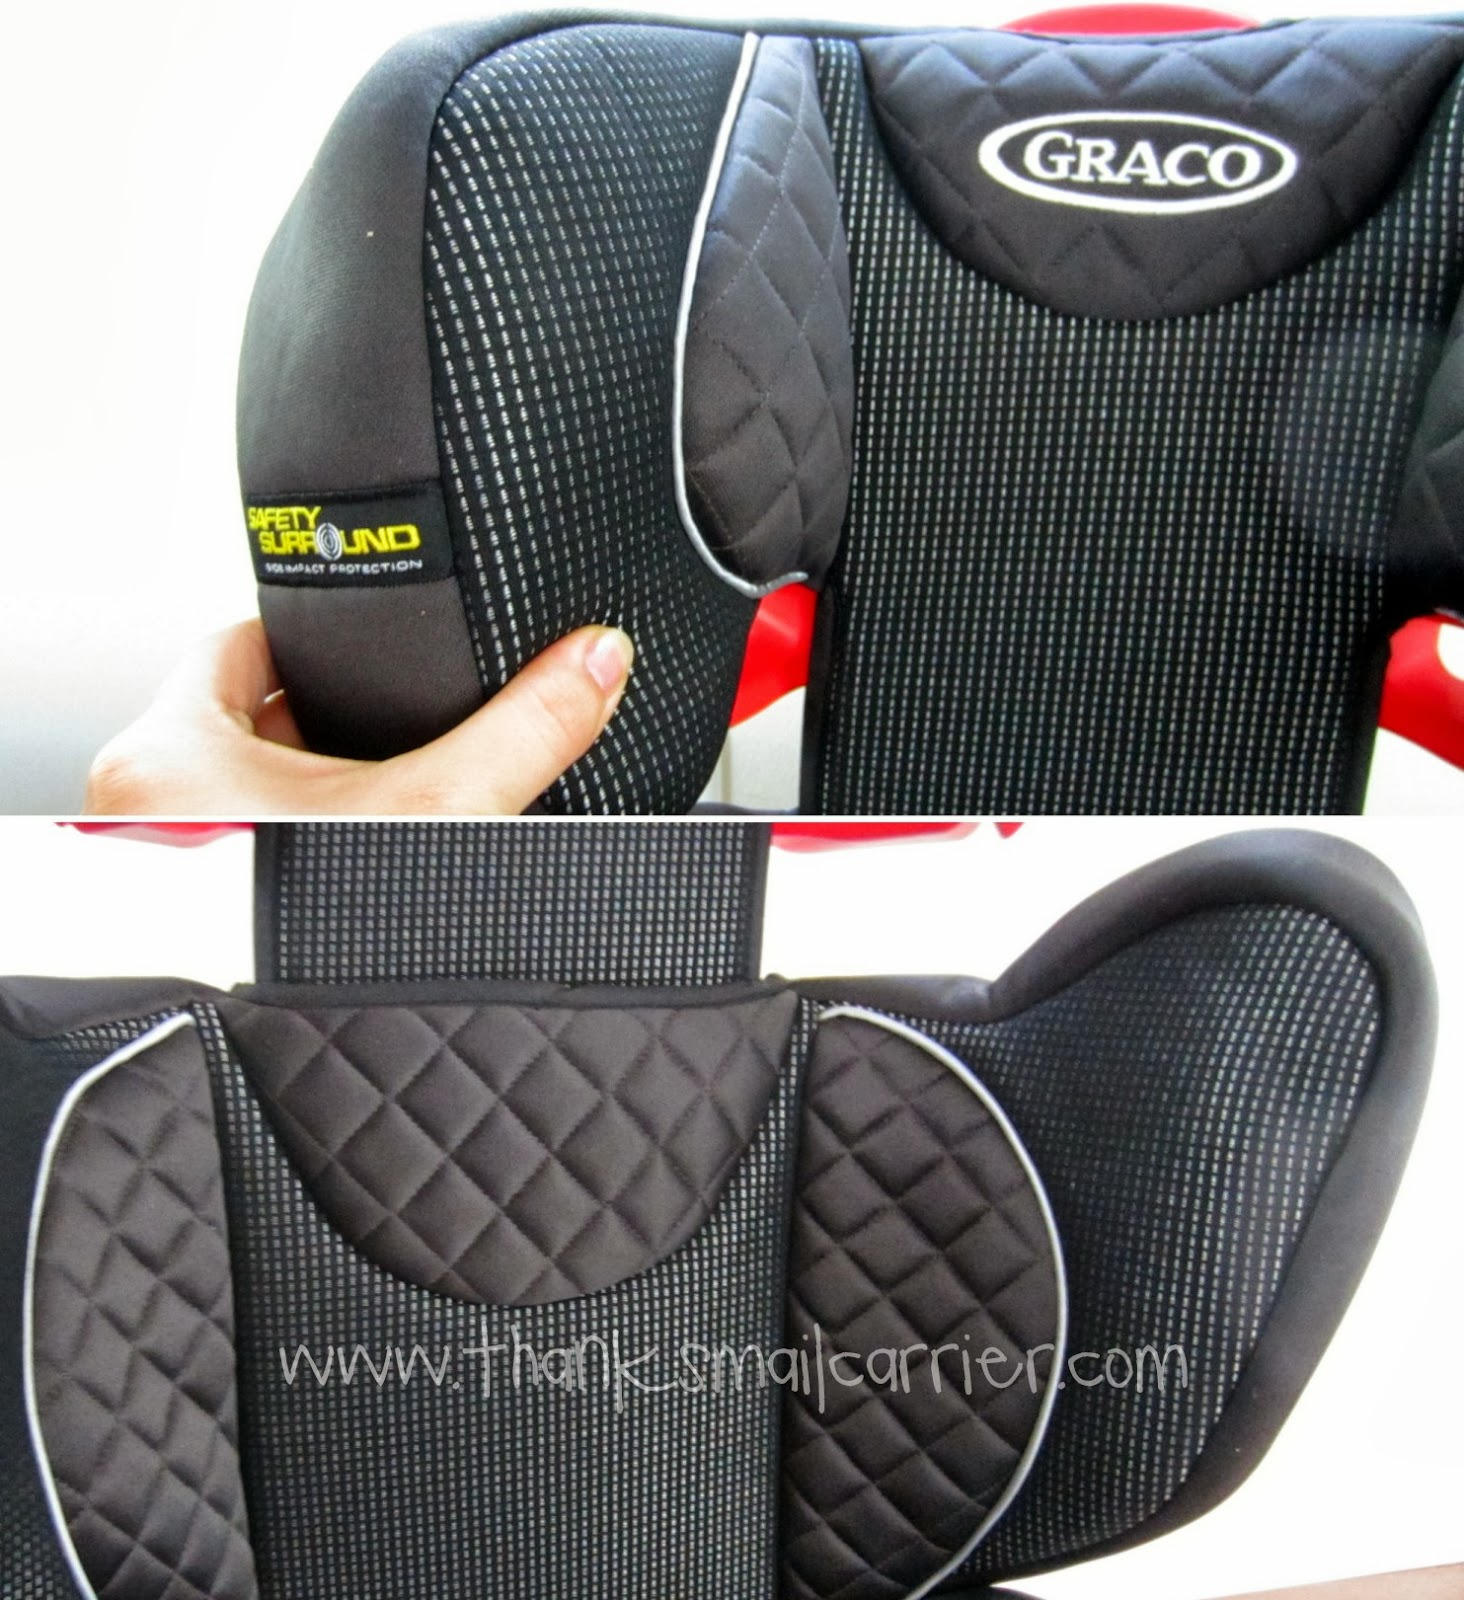 Graco Safety Surround